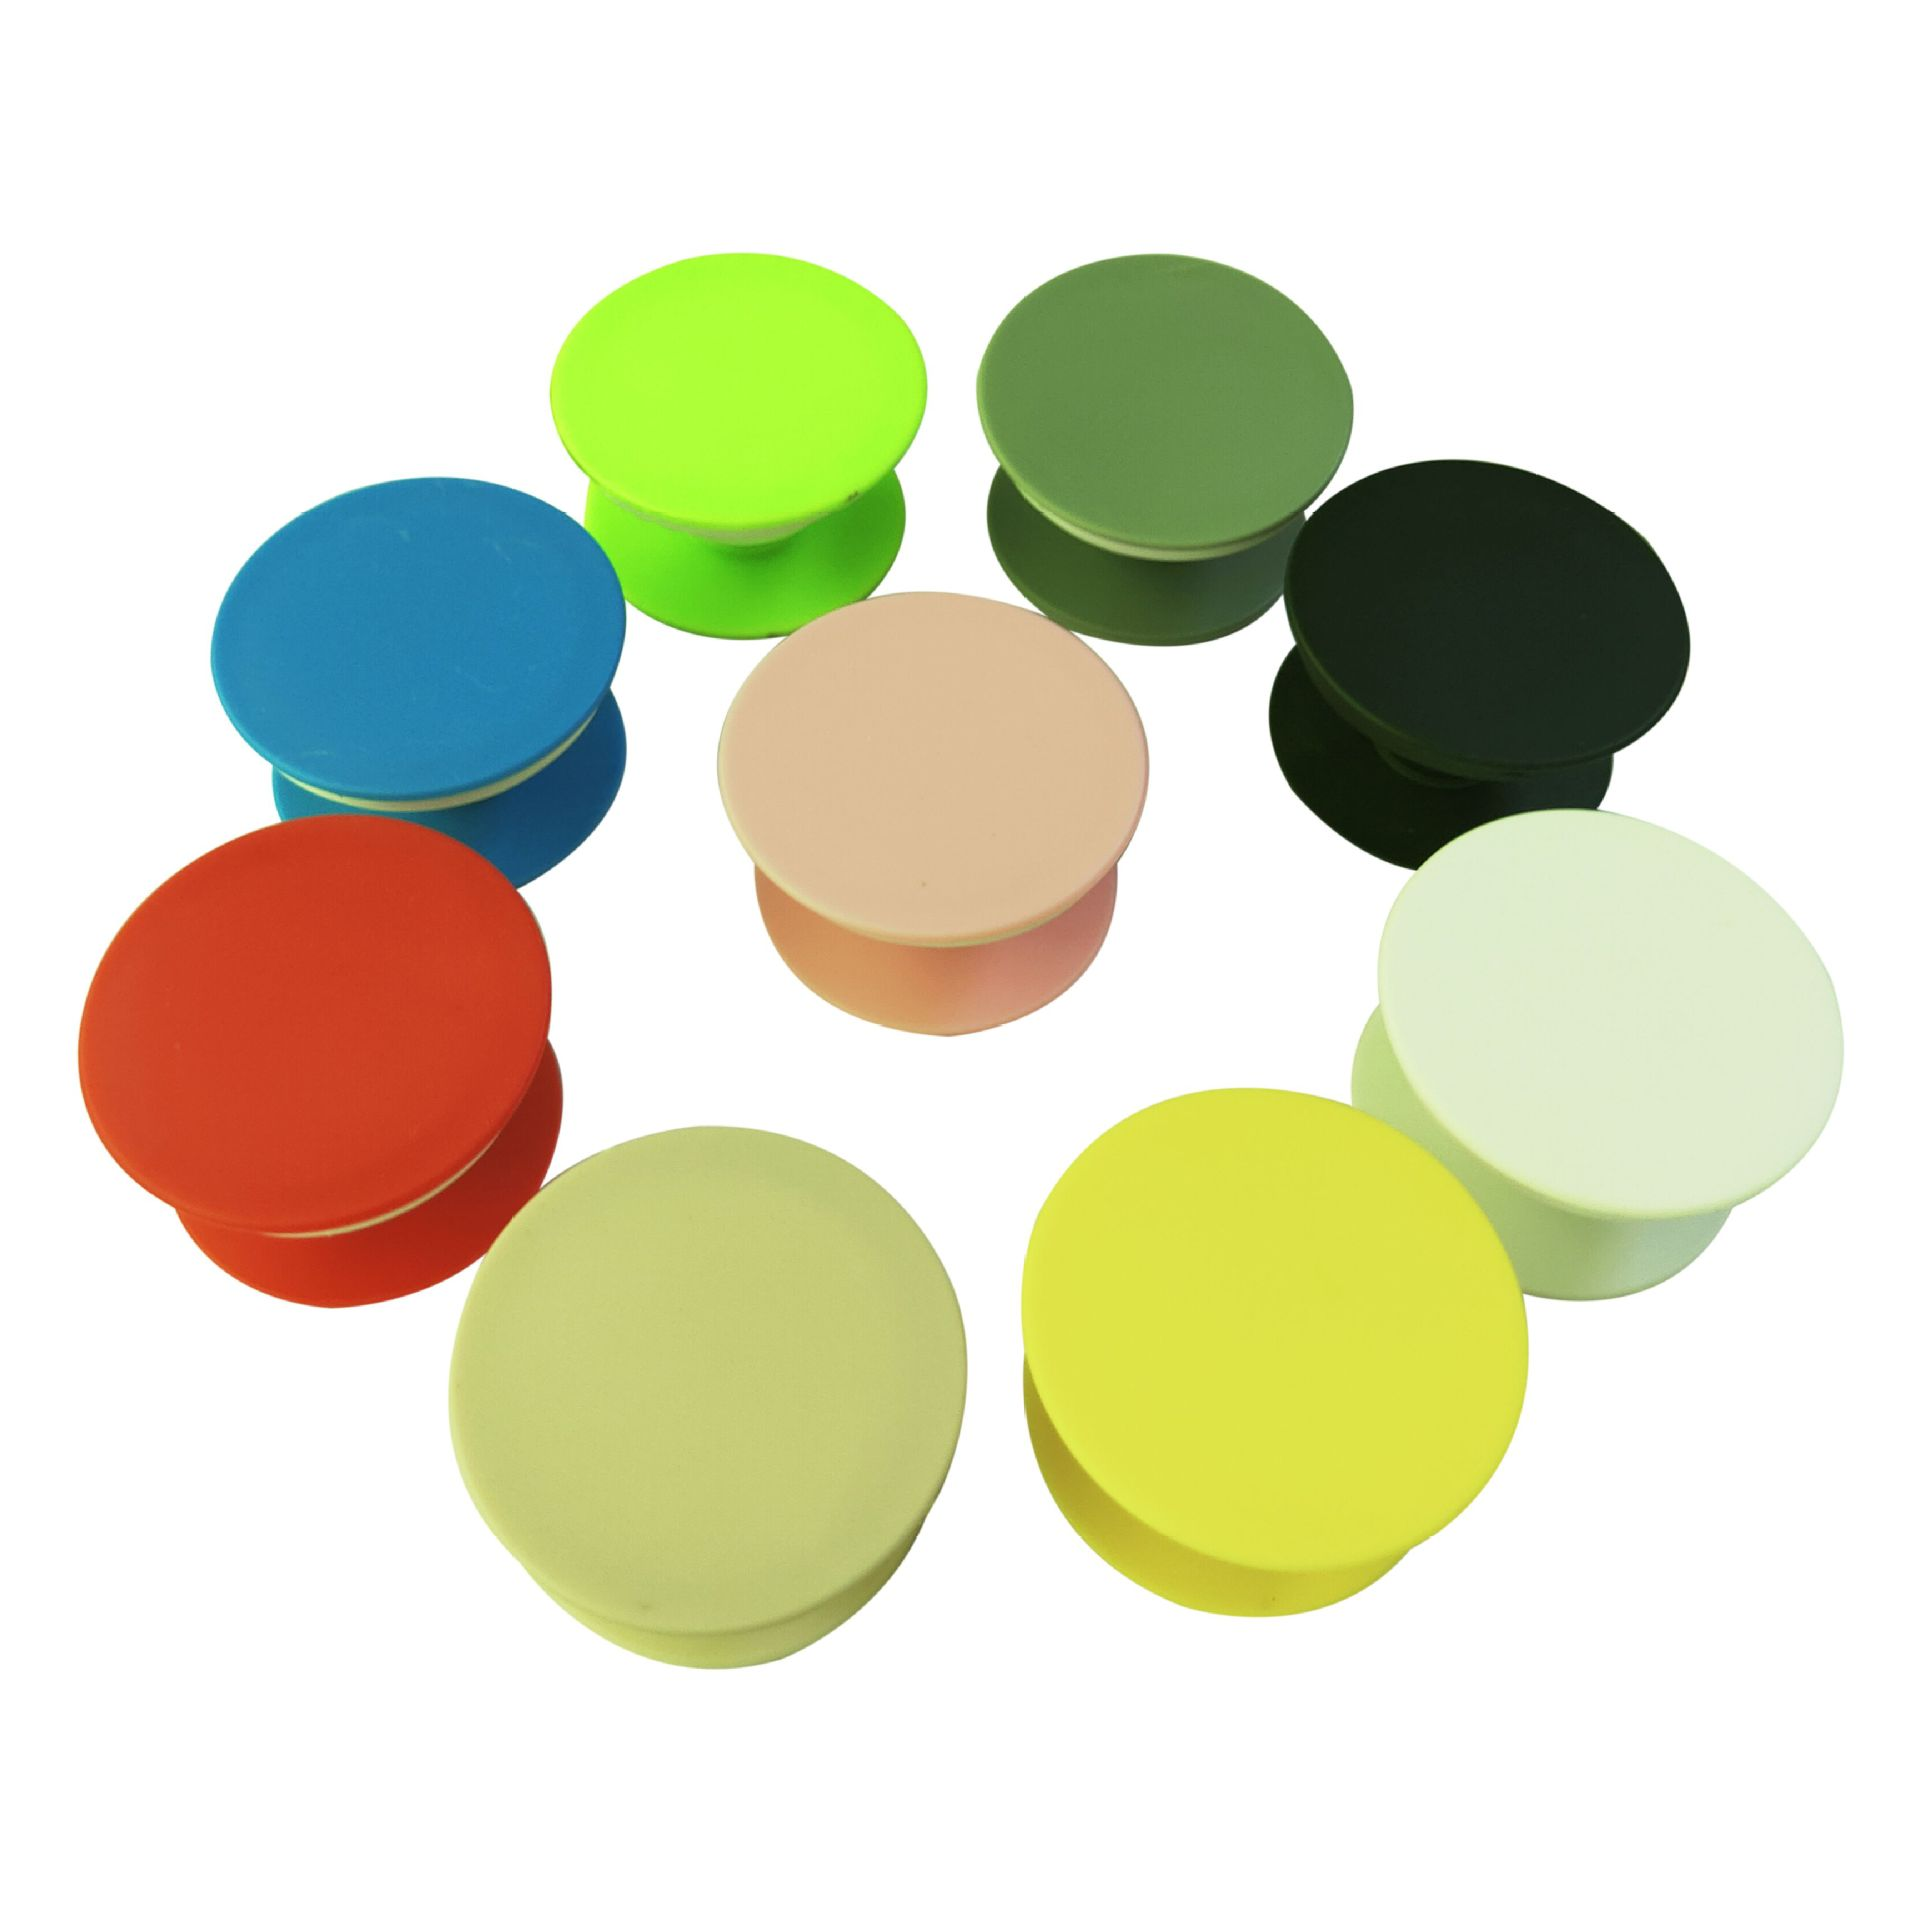 50pcs Round Blank Material Mobile Phone Folding Stretch Airbag Bracket Phone Holder Balloon Support